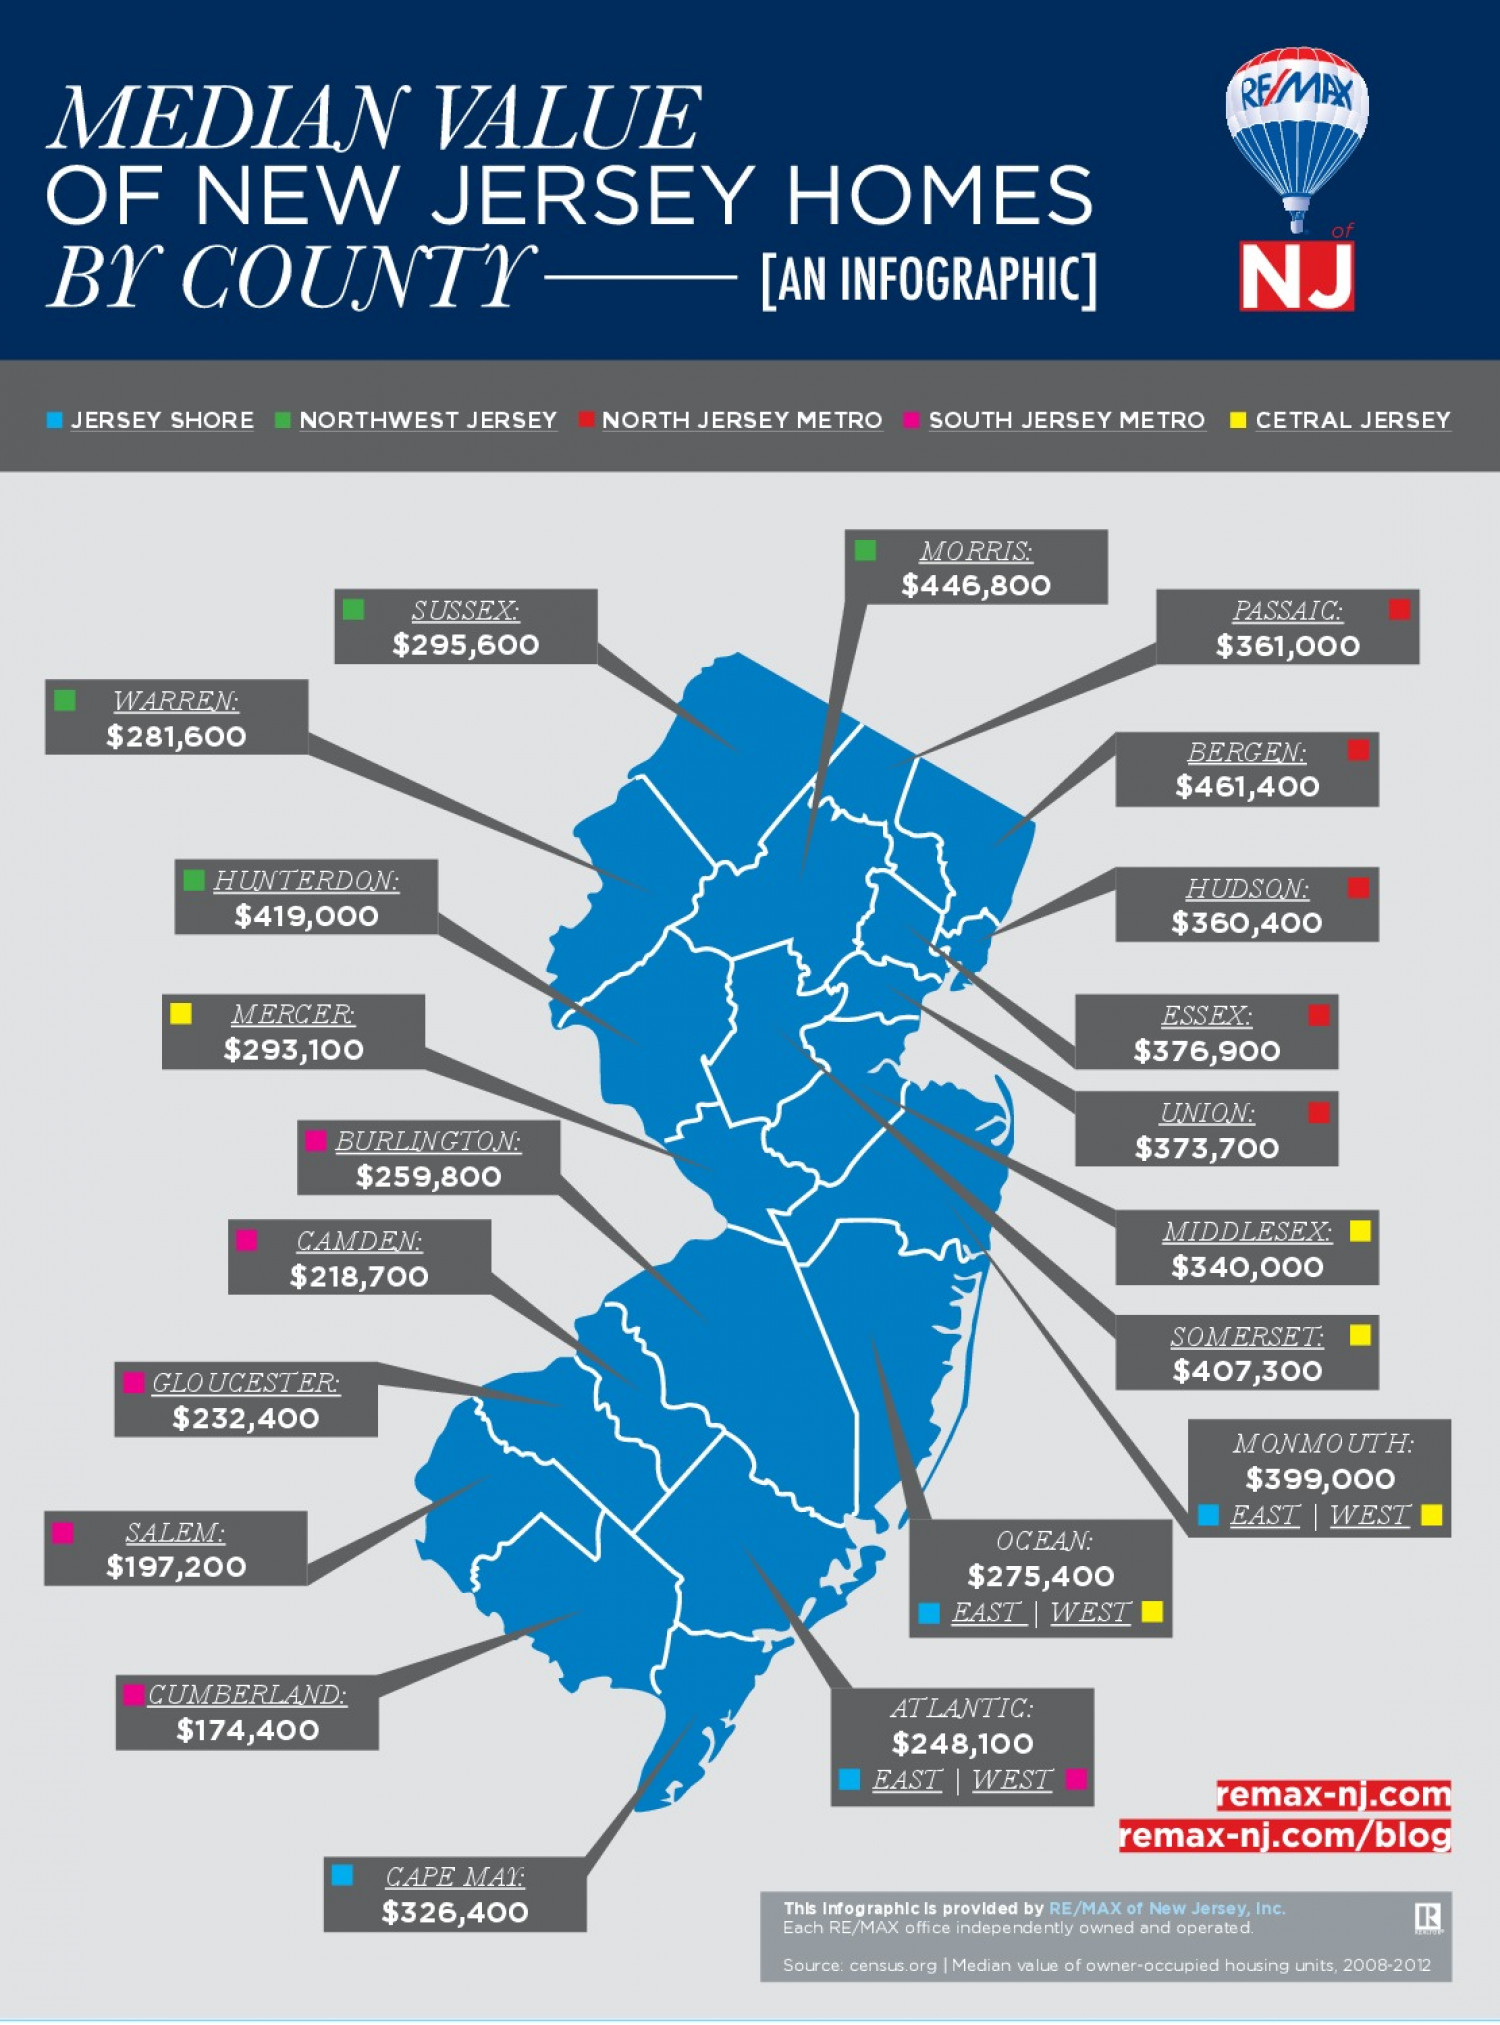 Median Value of New Jersey Homes By Country Infographic